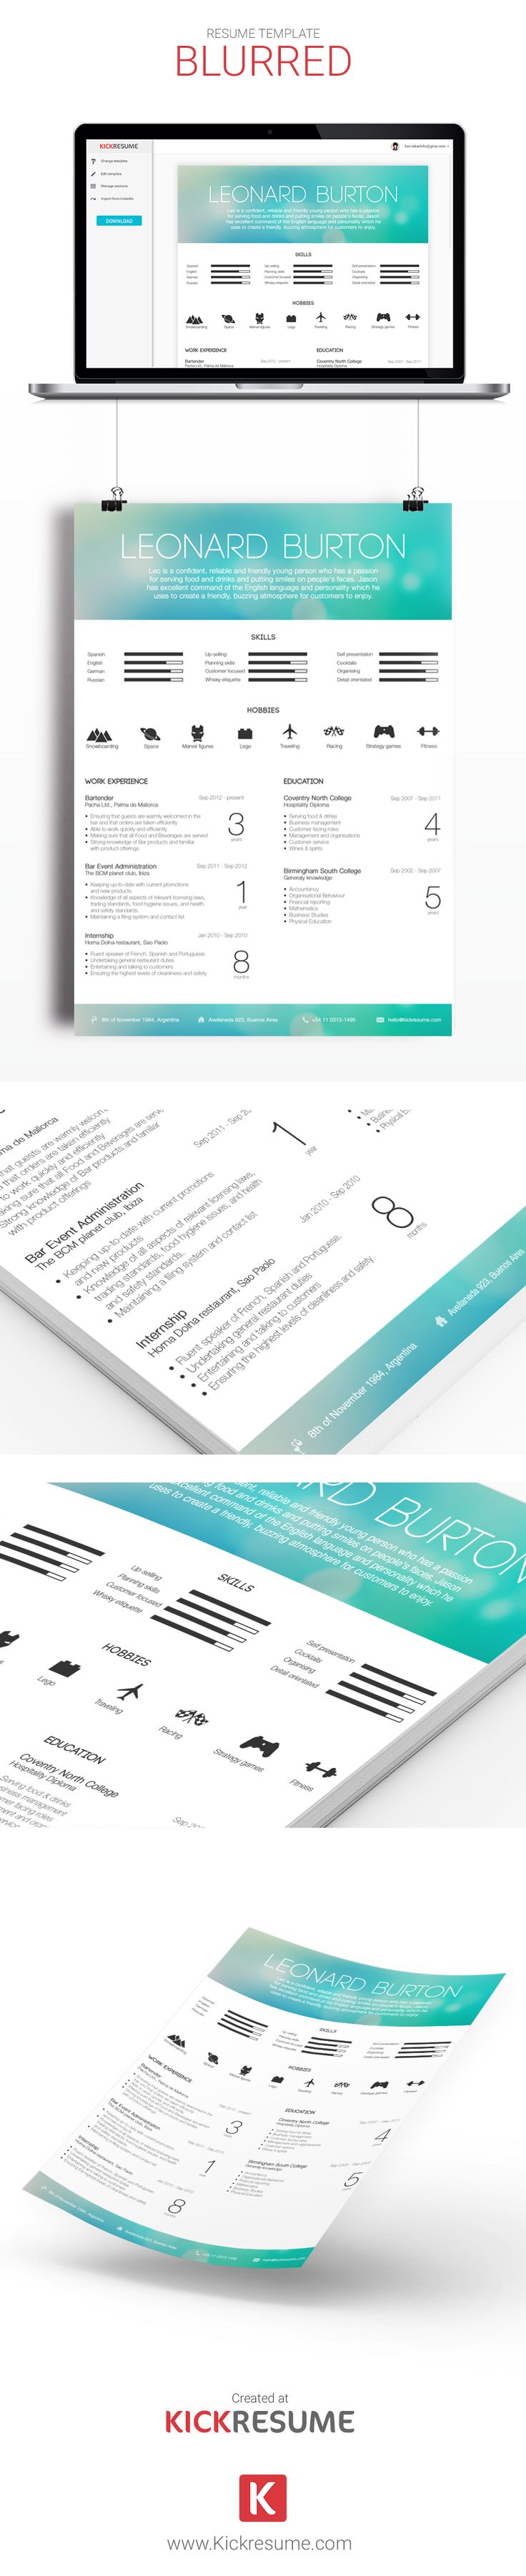 best images about kickresume templates gallery resume samples try world s most advanced resume builder resume sample resume template resume design creative resume resume online